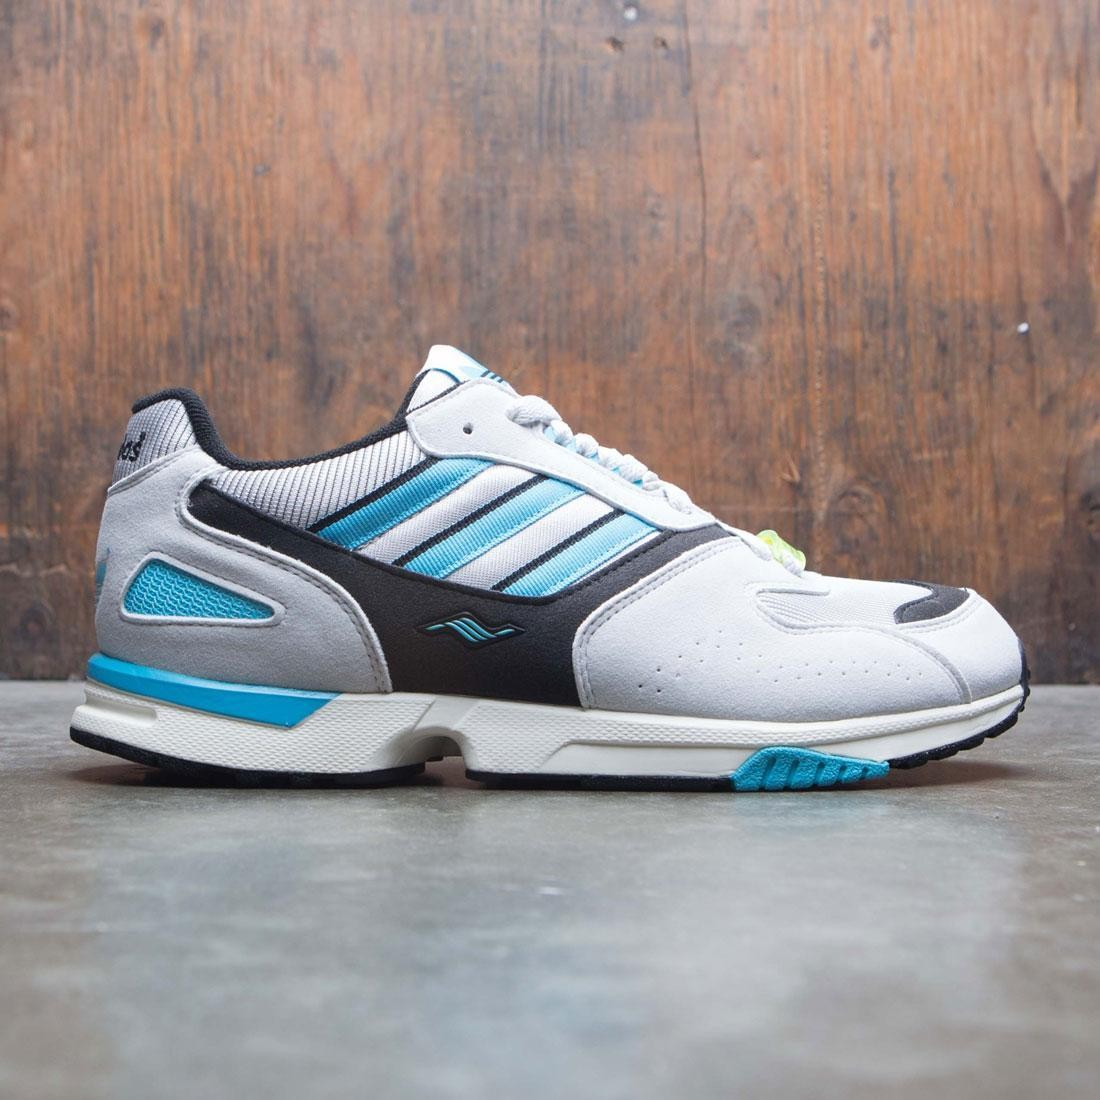 revendeur 71008 710a3 Adidas Consortium Men ZX 4000 (gray / core black / bright cyan)